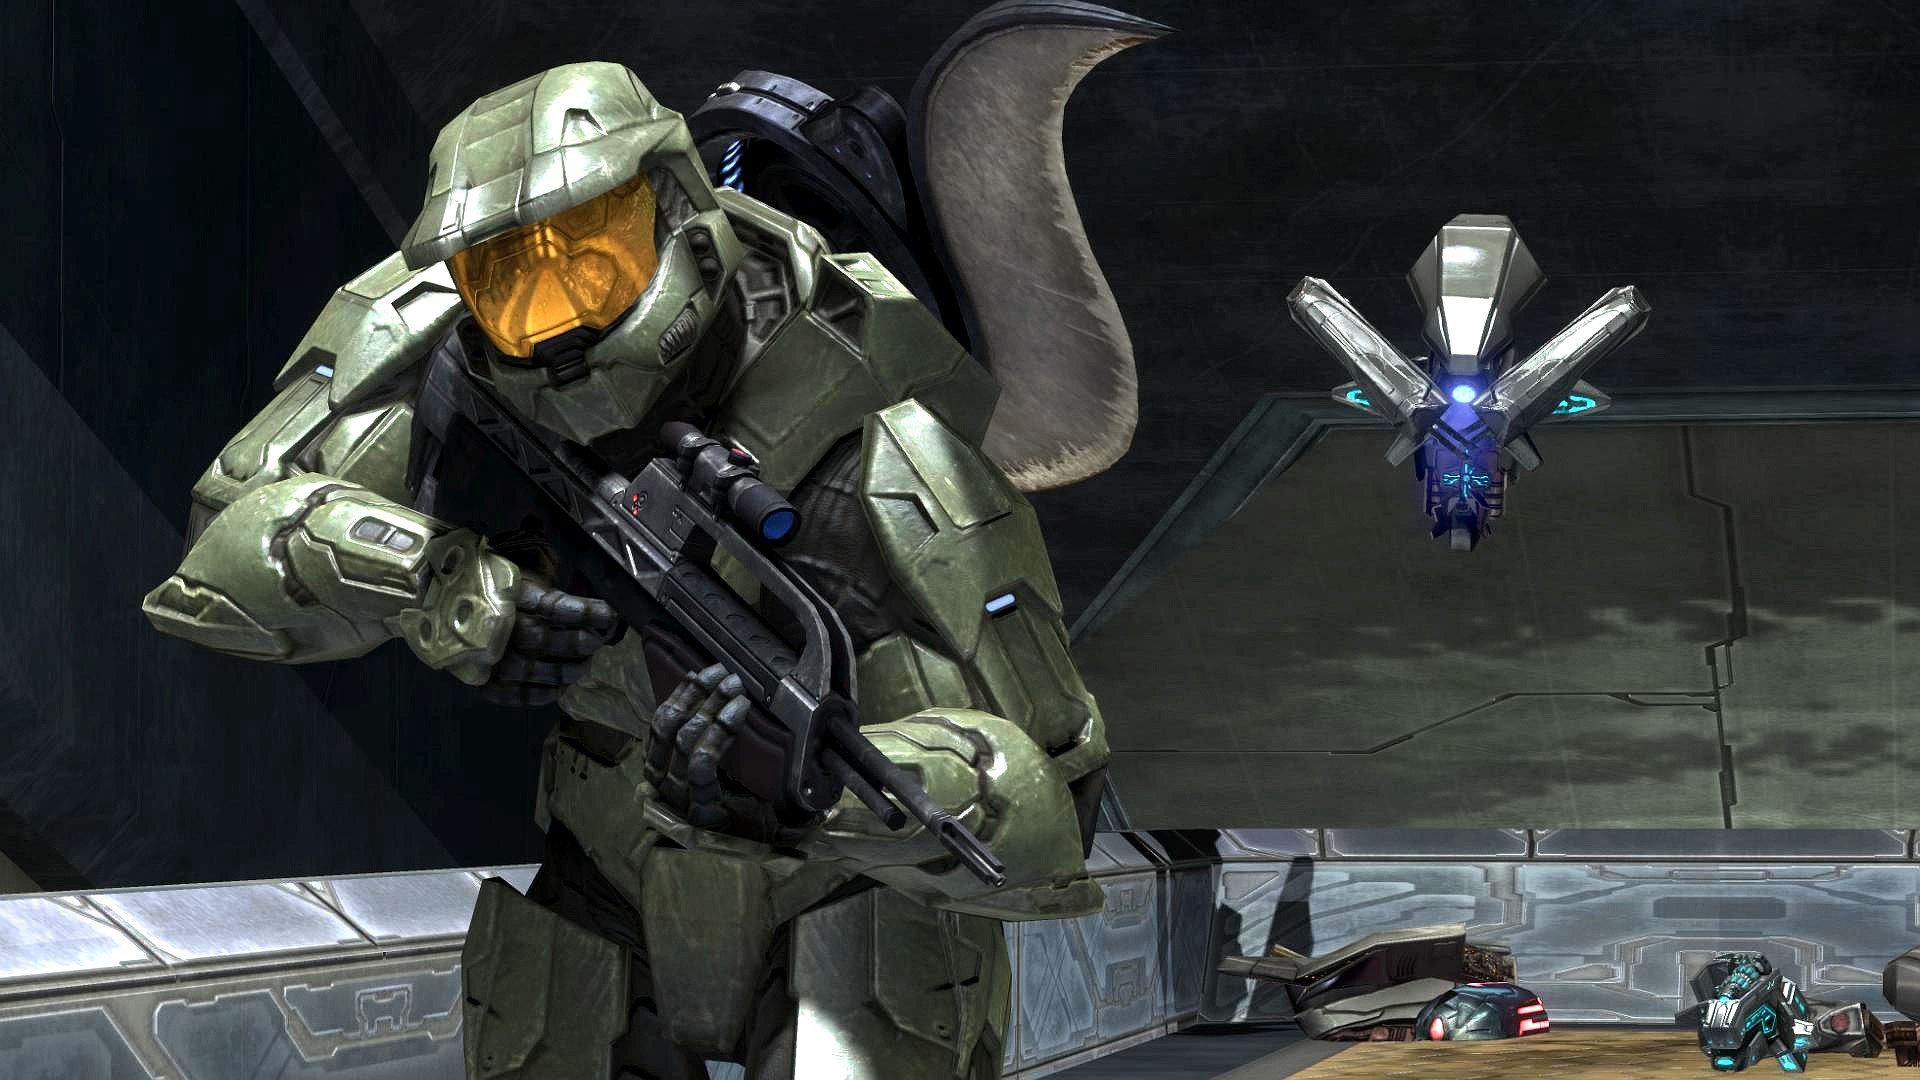 2057159612 58291682ff o Halo 3: The Ark & Master Chief